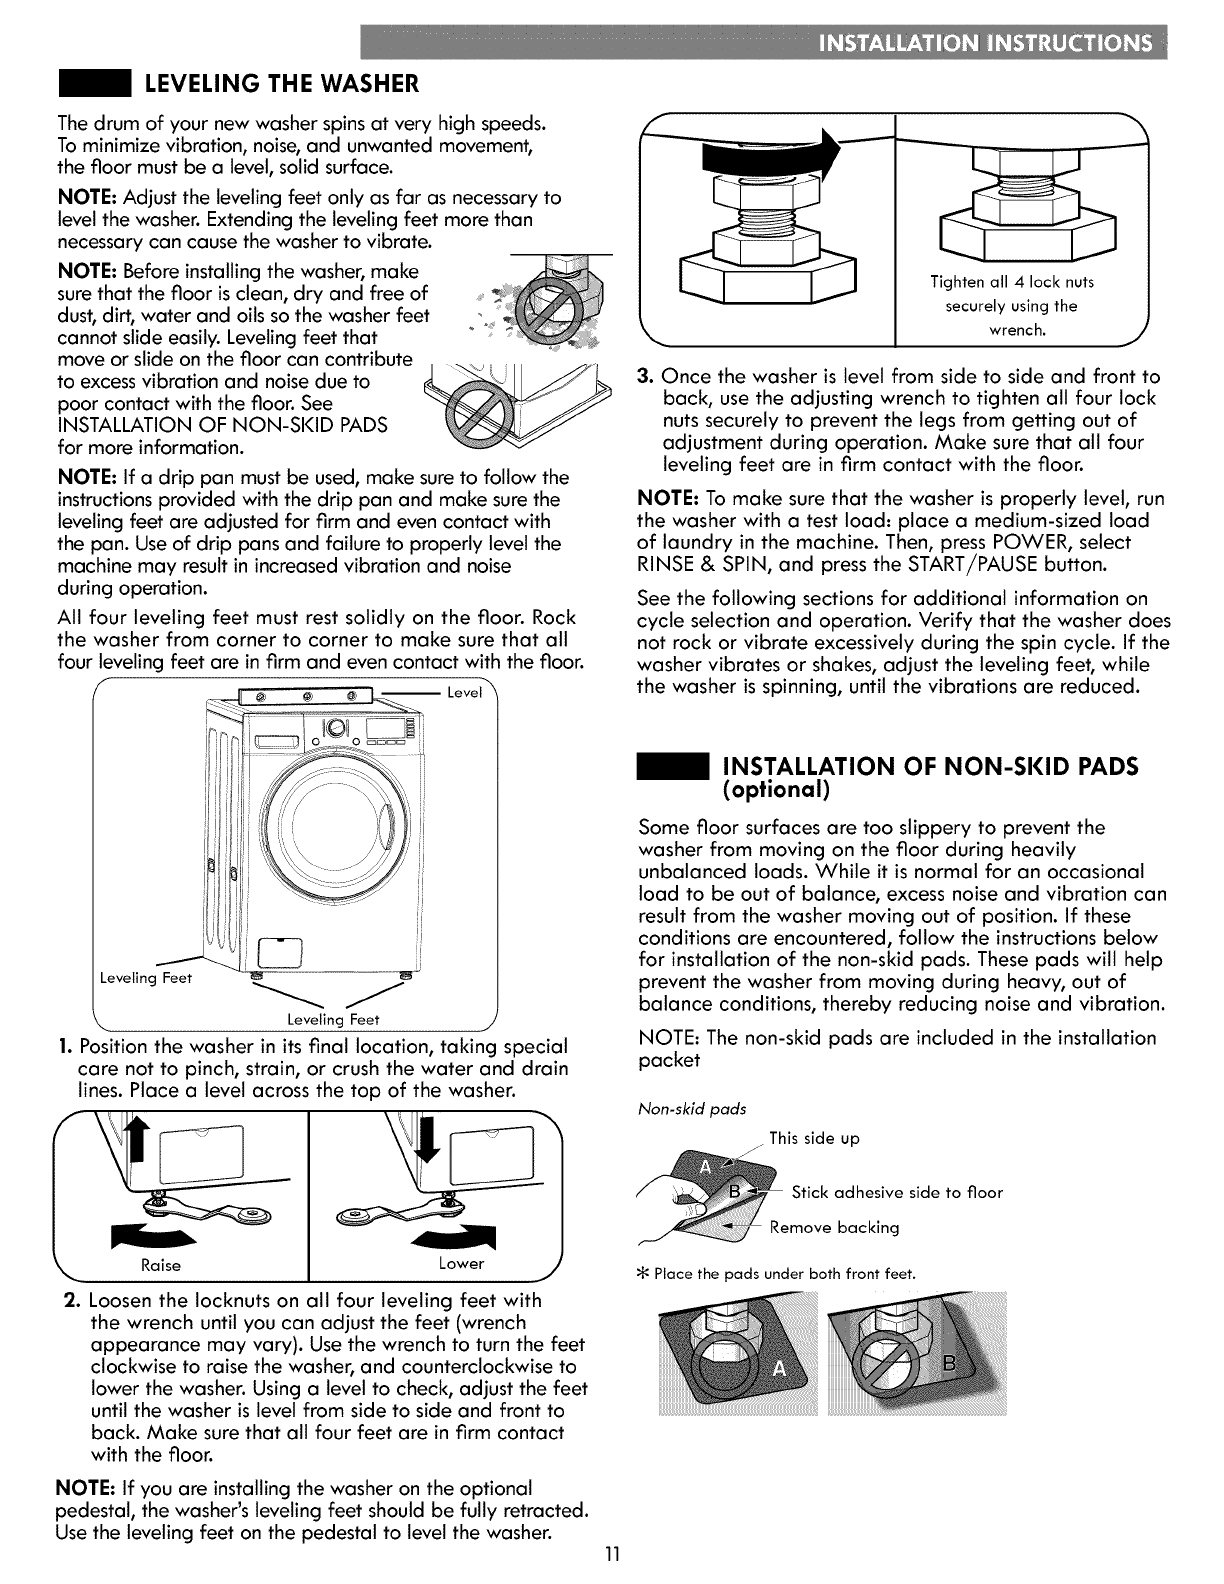 Kenmore 79641162410 User Manual WASHER Manuals And Guides